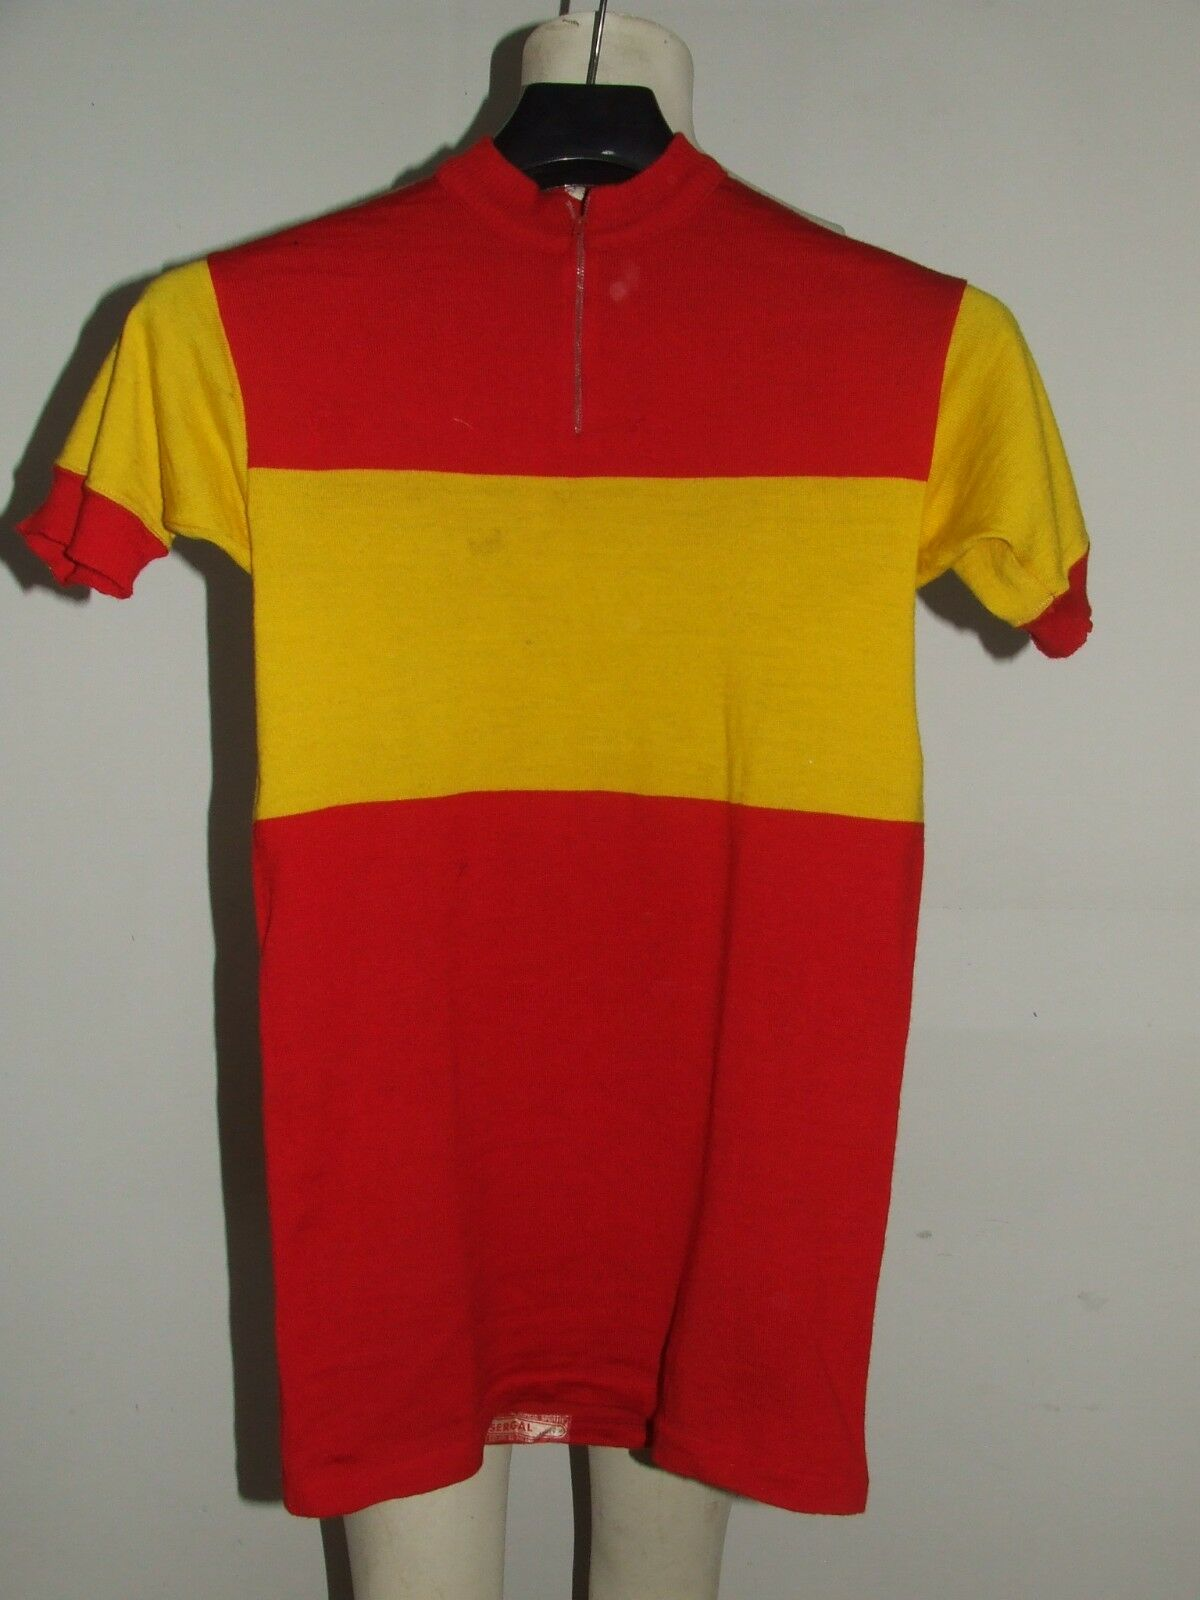 Bike Jersey Shirt  Maillot, Yonne Cycling Heroic Vintage 70's Spain Sergal 100% Wool  save 60% discount and fast shipping worldwide